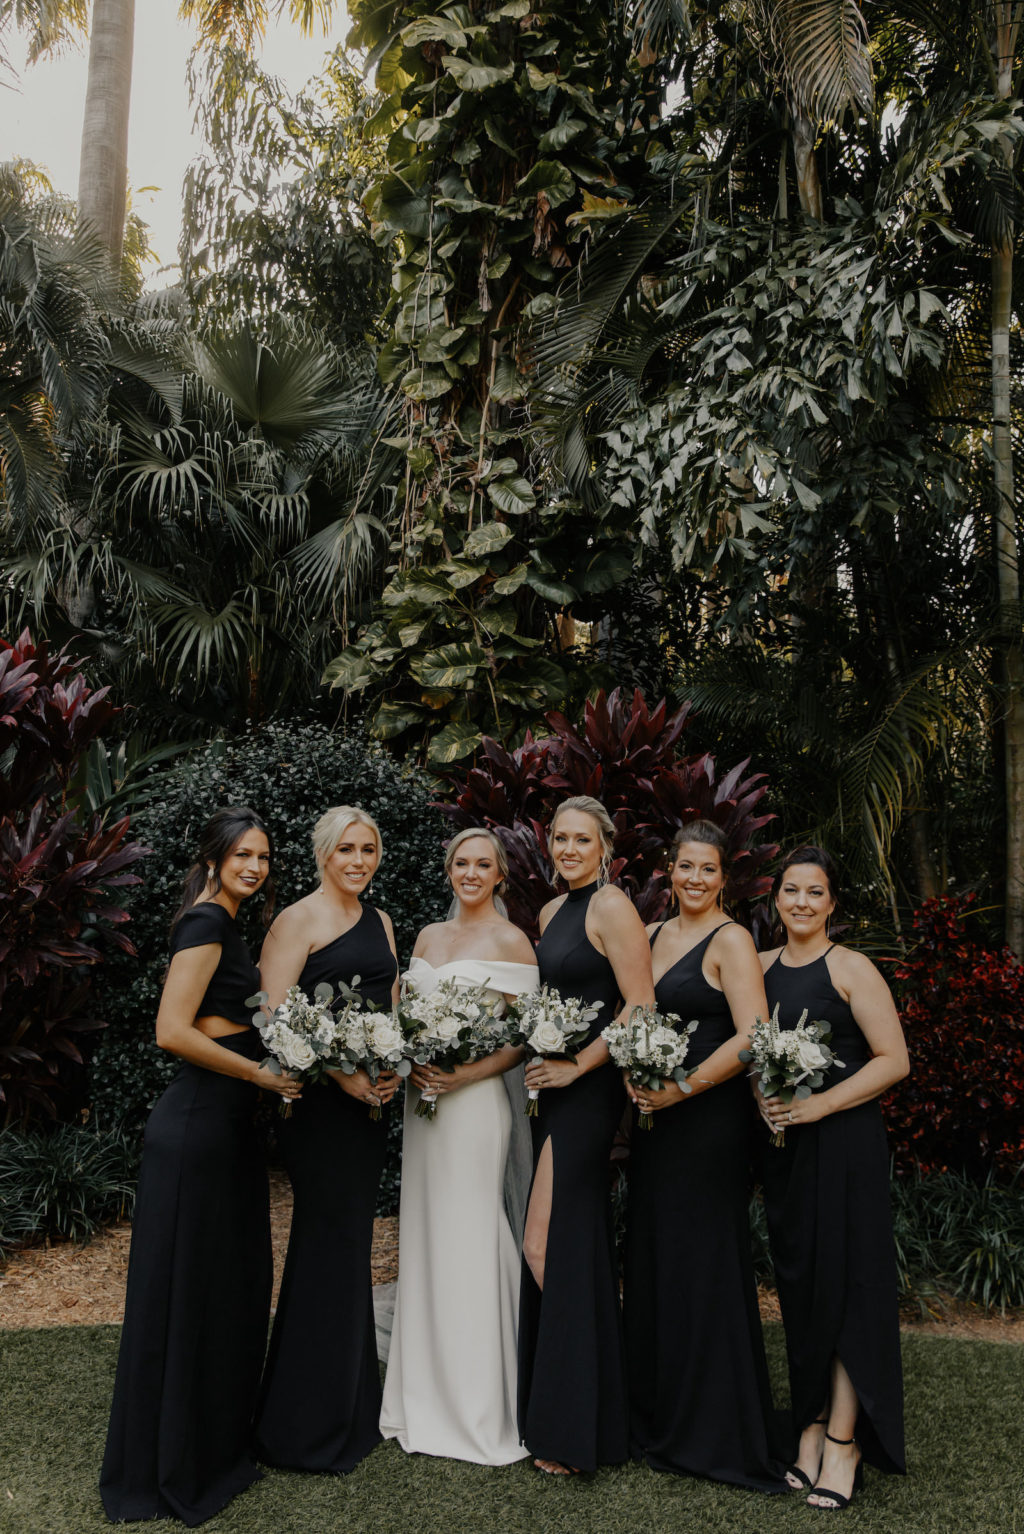 Classic Florida Bridal Party at Sunken Gardens in Downtown St. Petersburg, Brides Wearing Mix, and Match Long Black BHLDN Bridesmaid Dresses, Holding Minimalist White Floral Bouquets with Greenery   Tampa Bay Wedding Hair and Makeup Artist Femme Akoi Beauty Studios